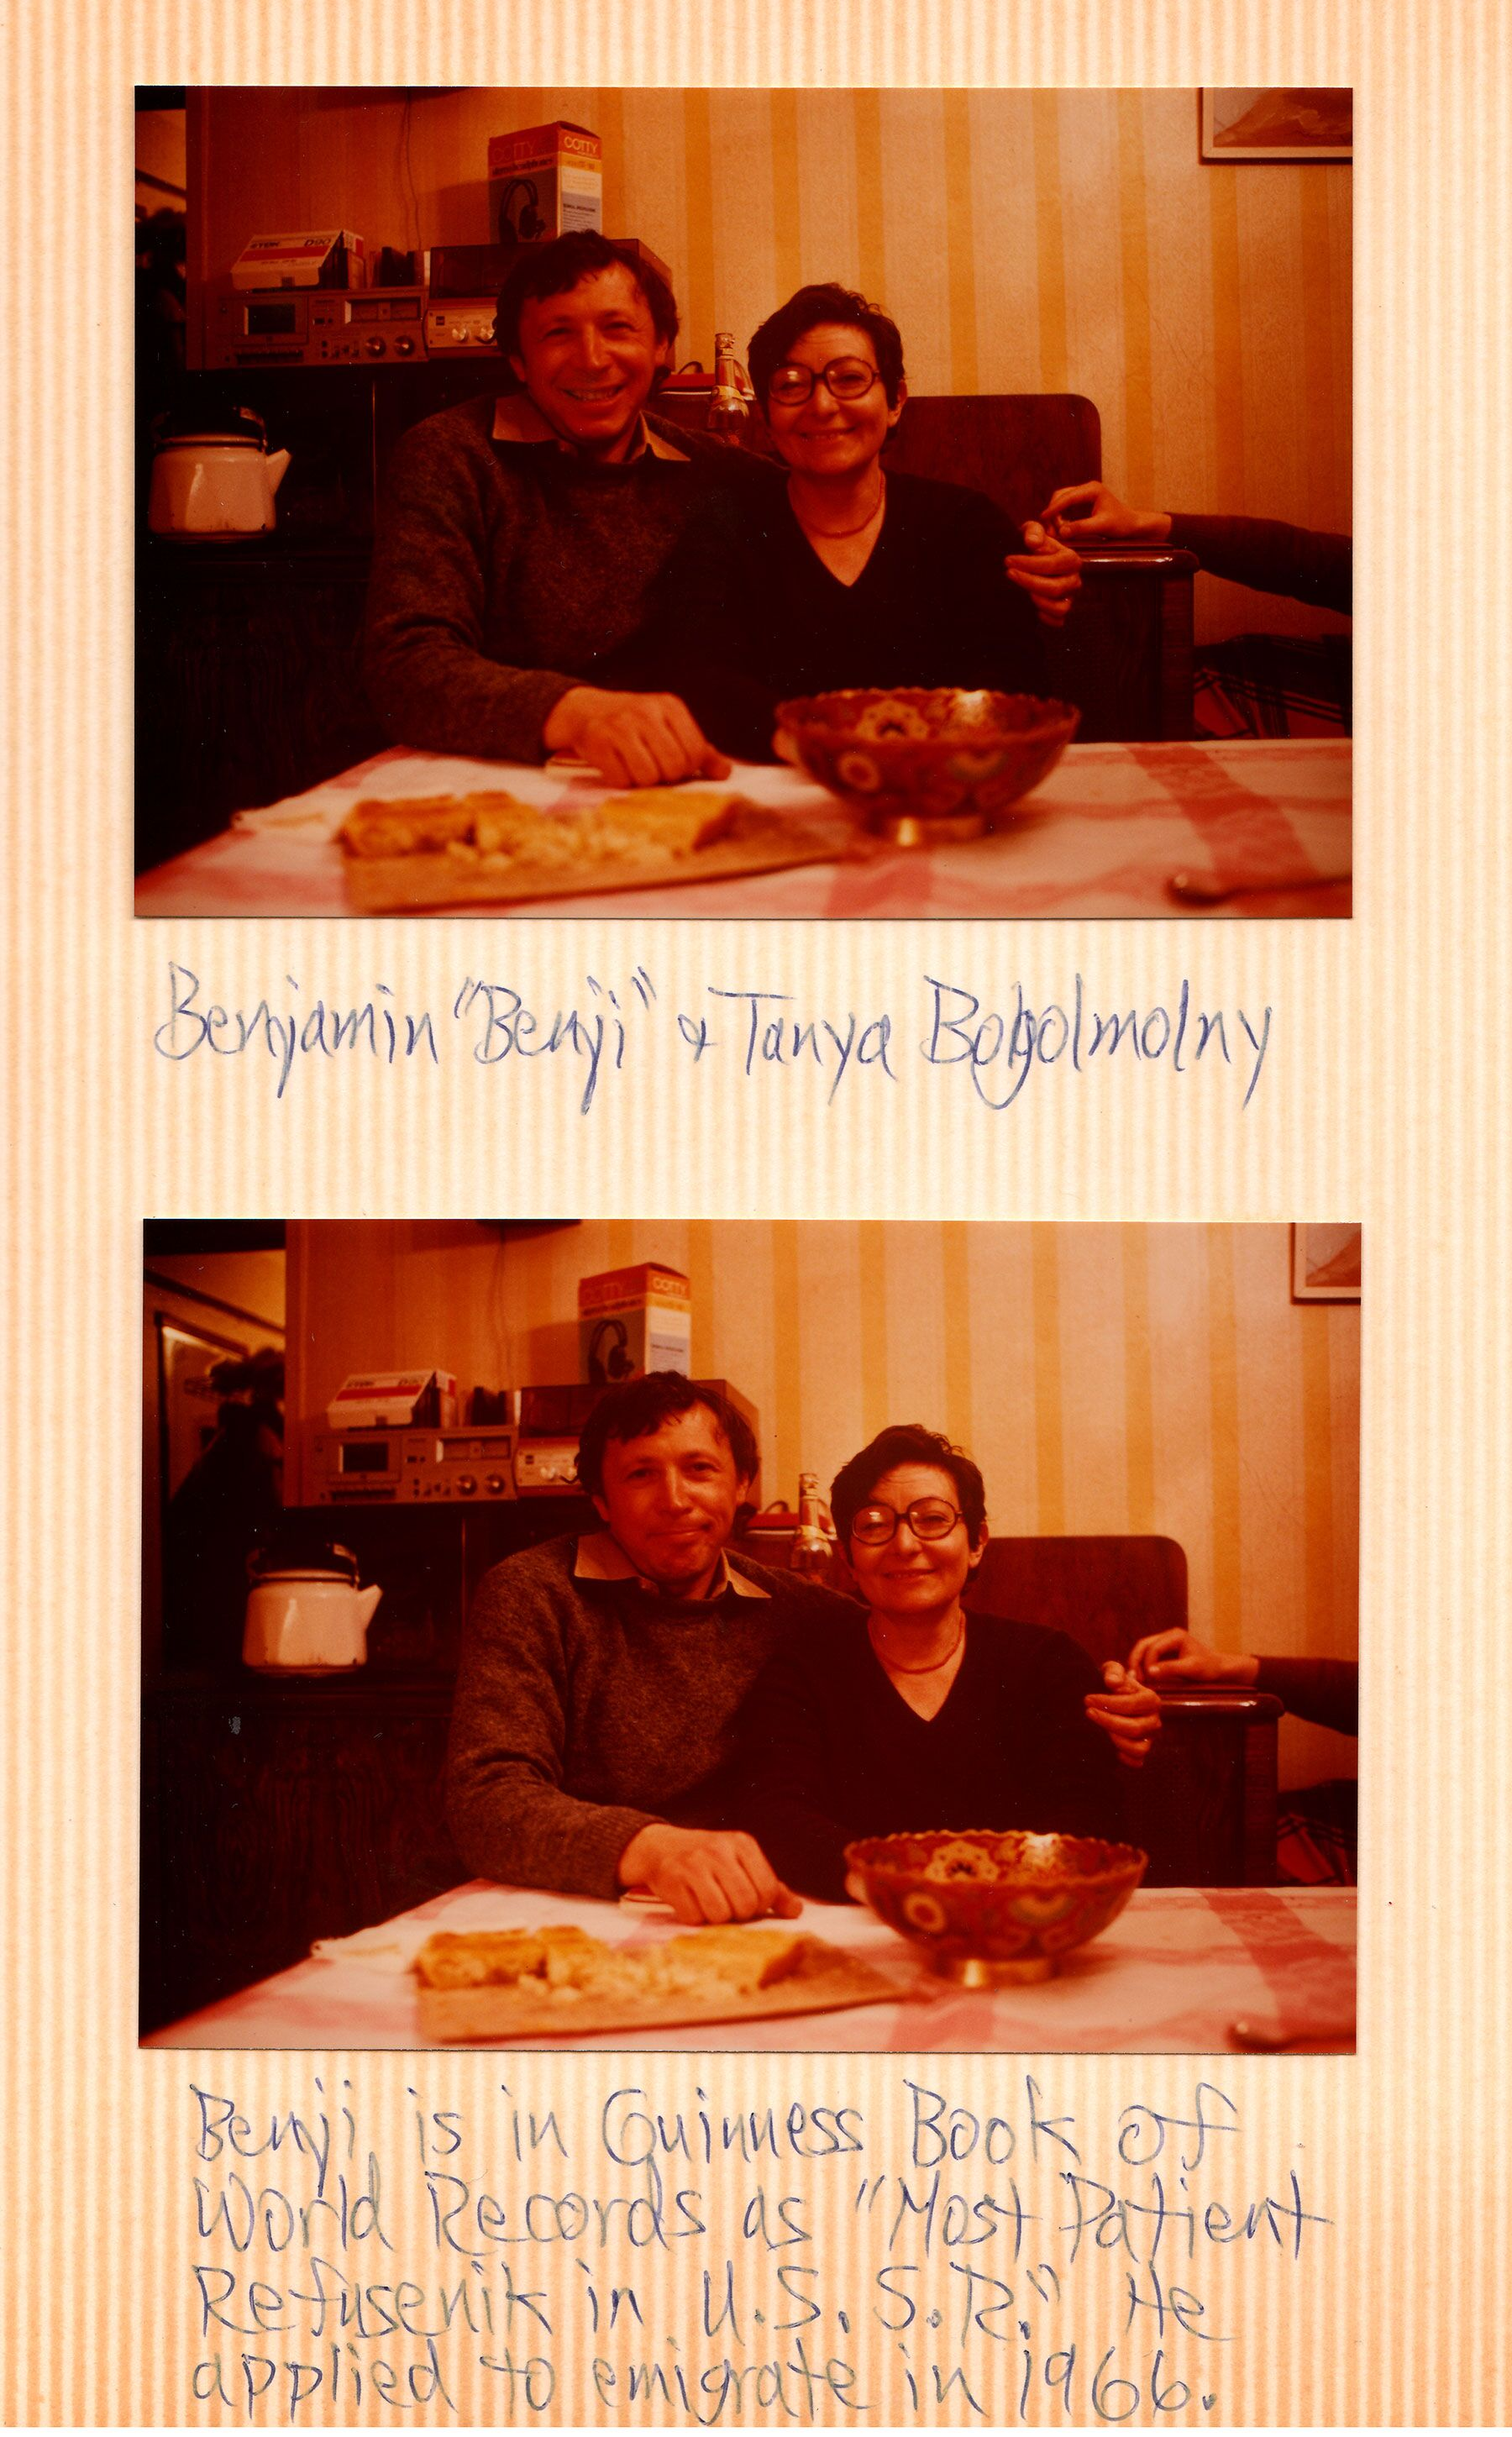 Scan from Hamer's scrapbook showing Bejamin and Tanya